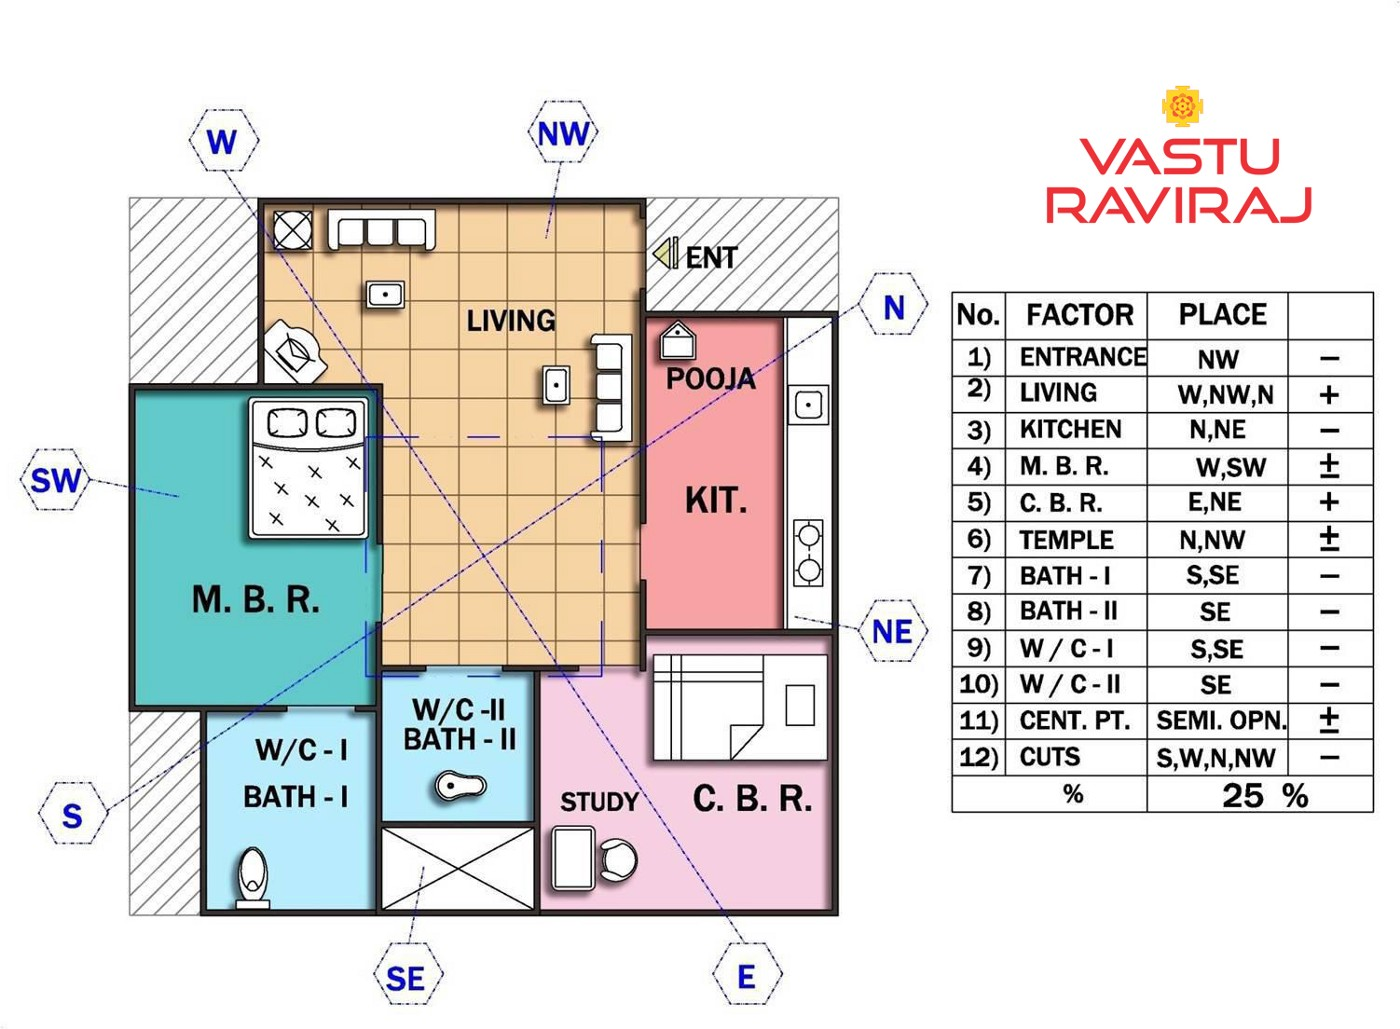 A House With North West Entrance A House With North West Entrance Could By Vasturaviraj Medium